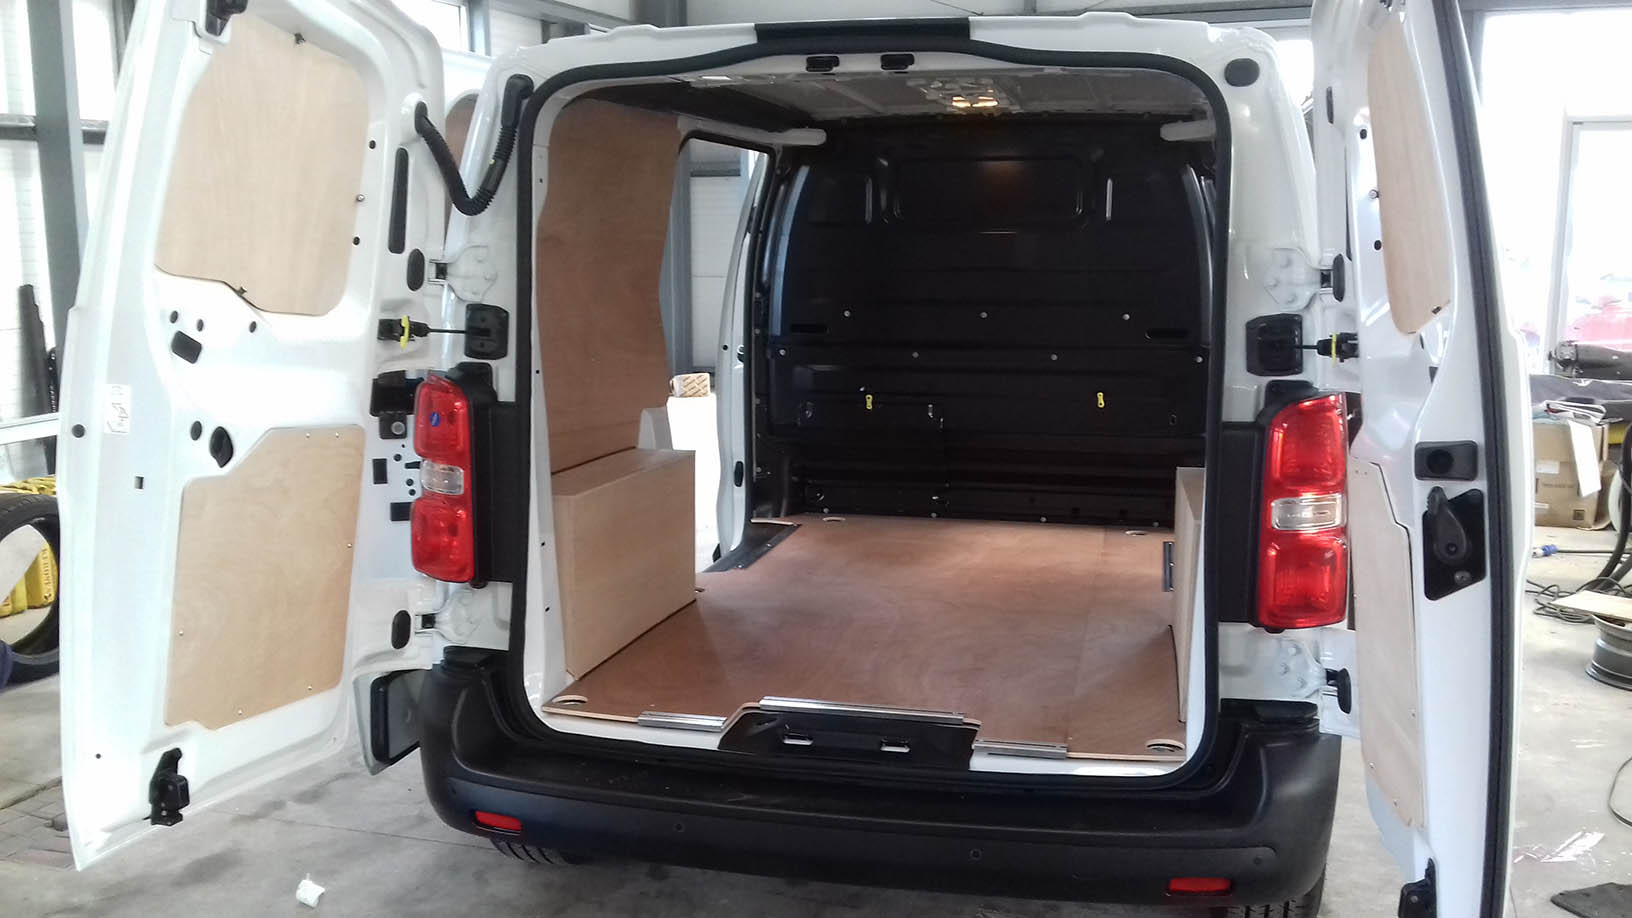 Ply Lining Peugeot Expert Van Conversion